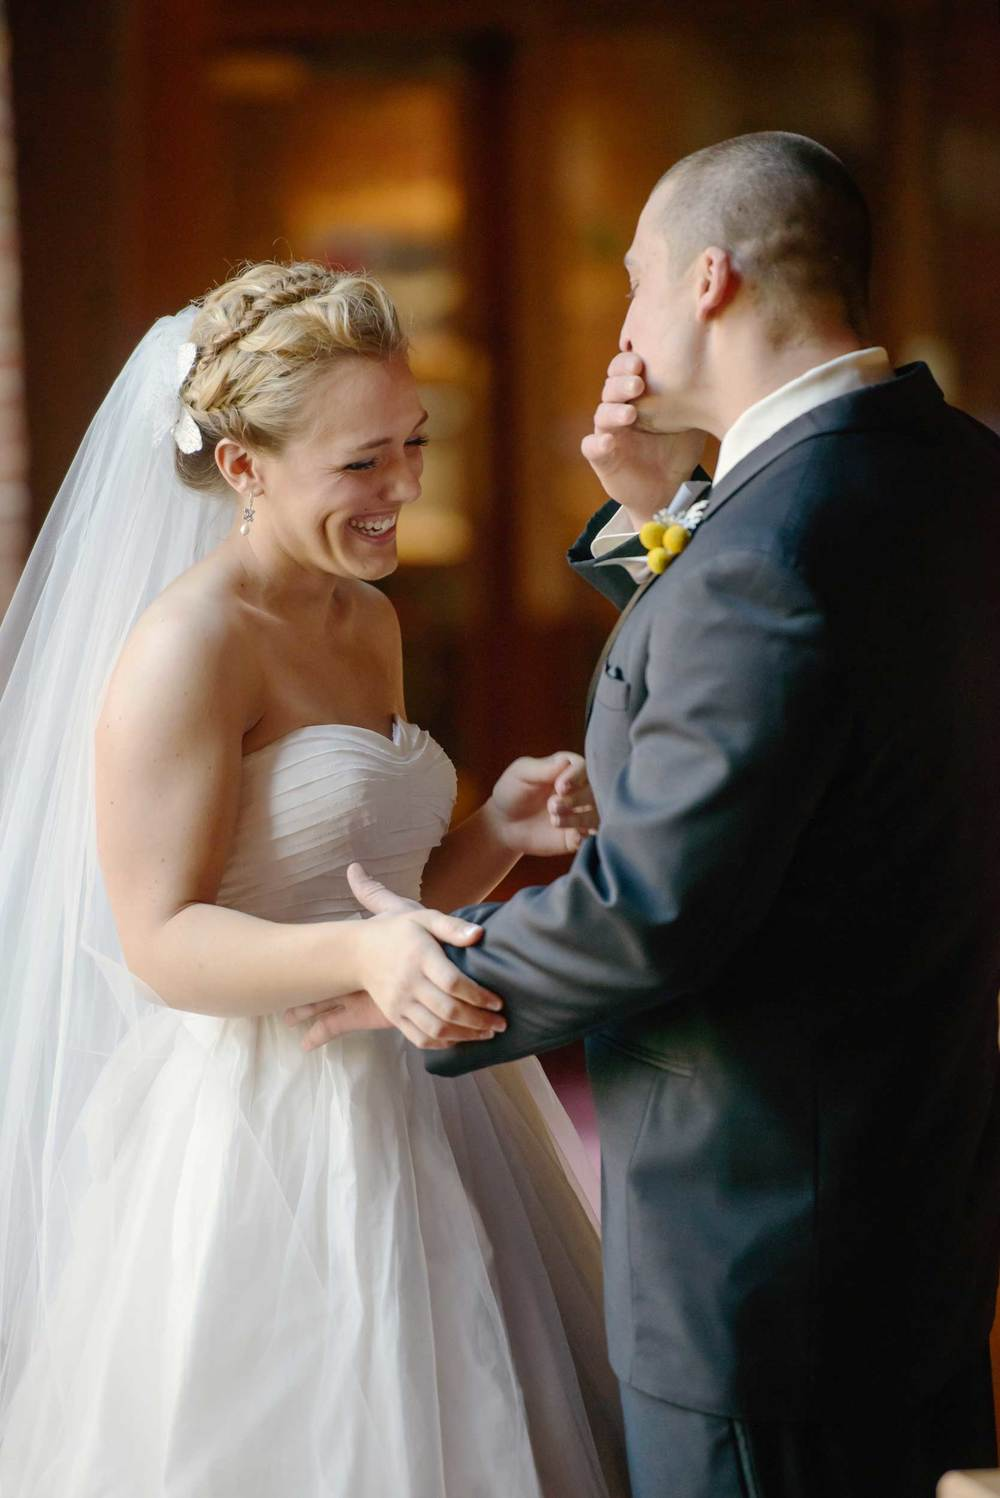 Groom's adorable reaction at The First Look